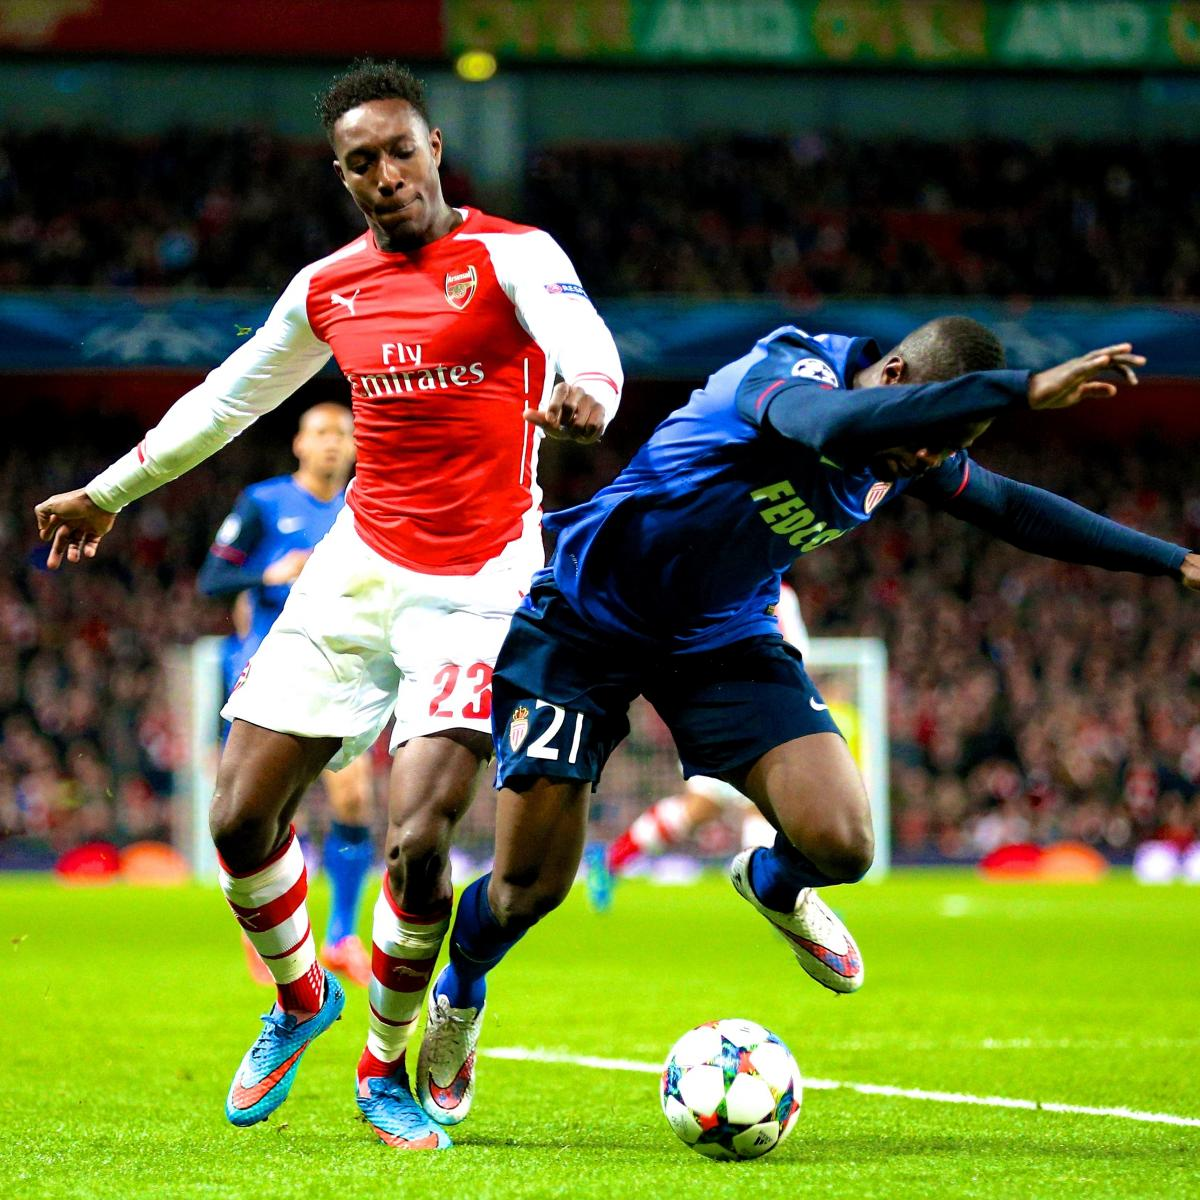 Psg Vs Chelsea Live Score Highlights From Champions: Arsenal Vs. Monaco: Live Score, Highlights From Champions